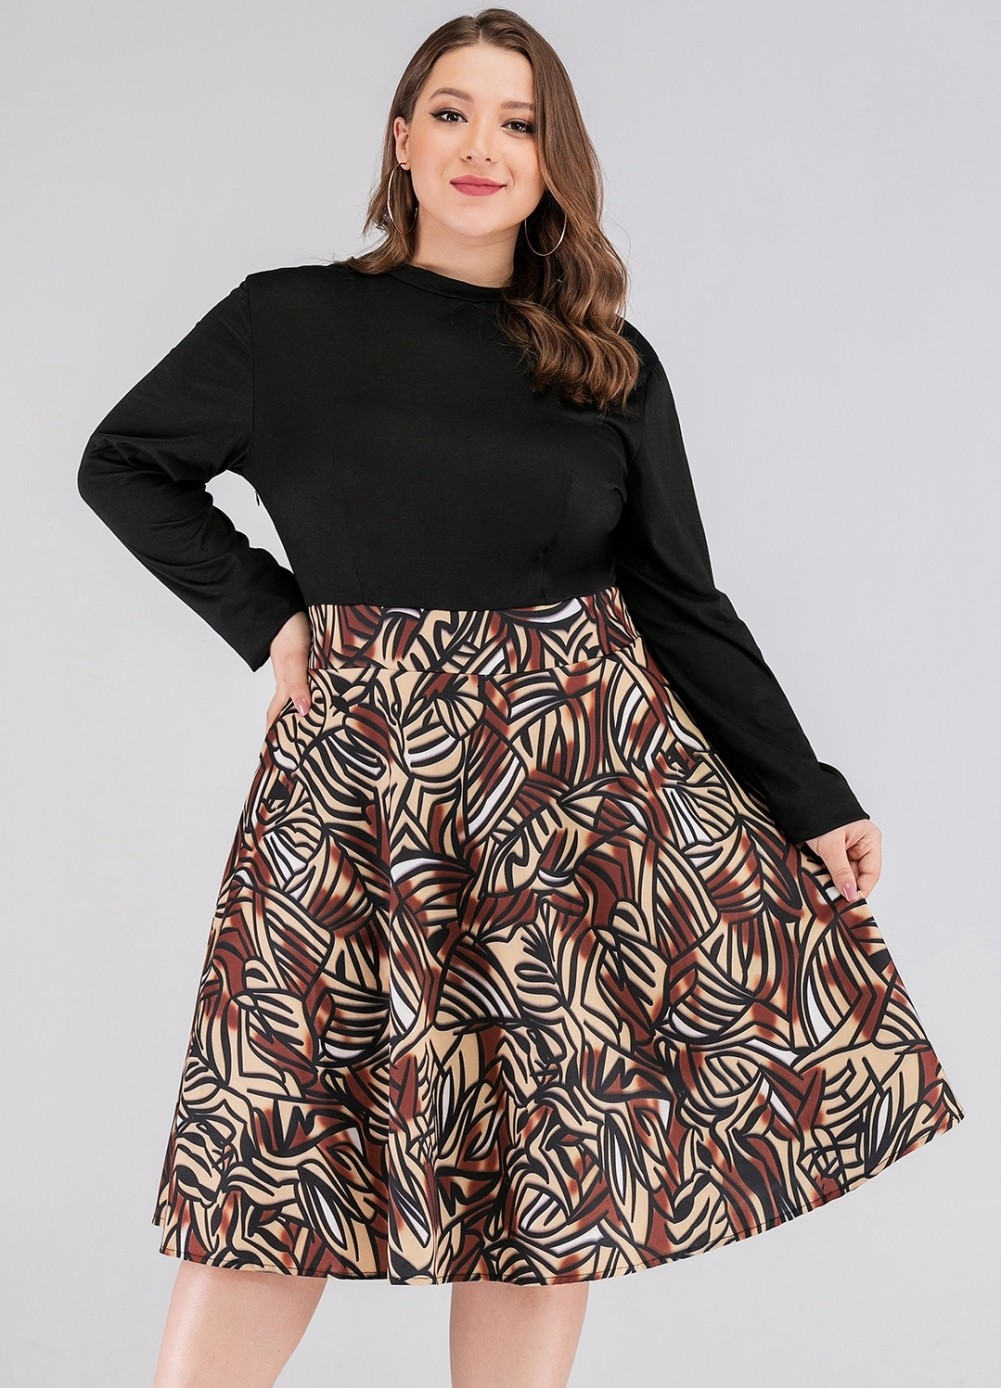 Robe Patineuse A Manches Longues En Gros A Grande Taille Amant Global